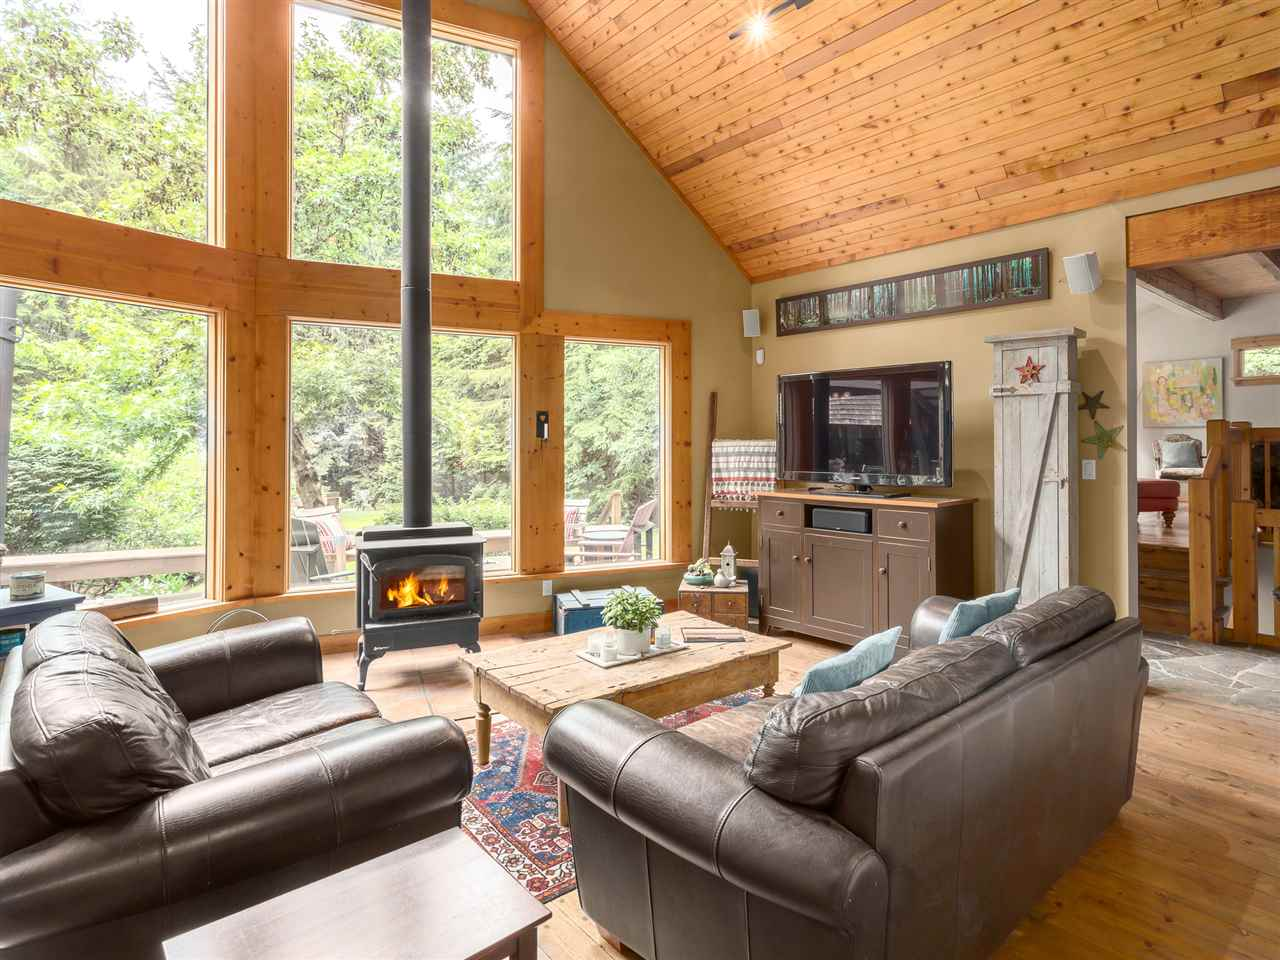 Photo 2: 2601 THE Boulevard in Squamish: Garibaldi Highlands House for sale : MLS® # R2176534